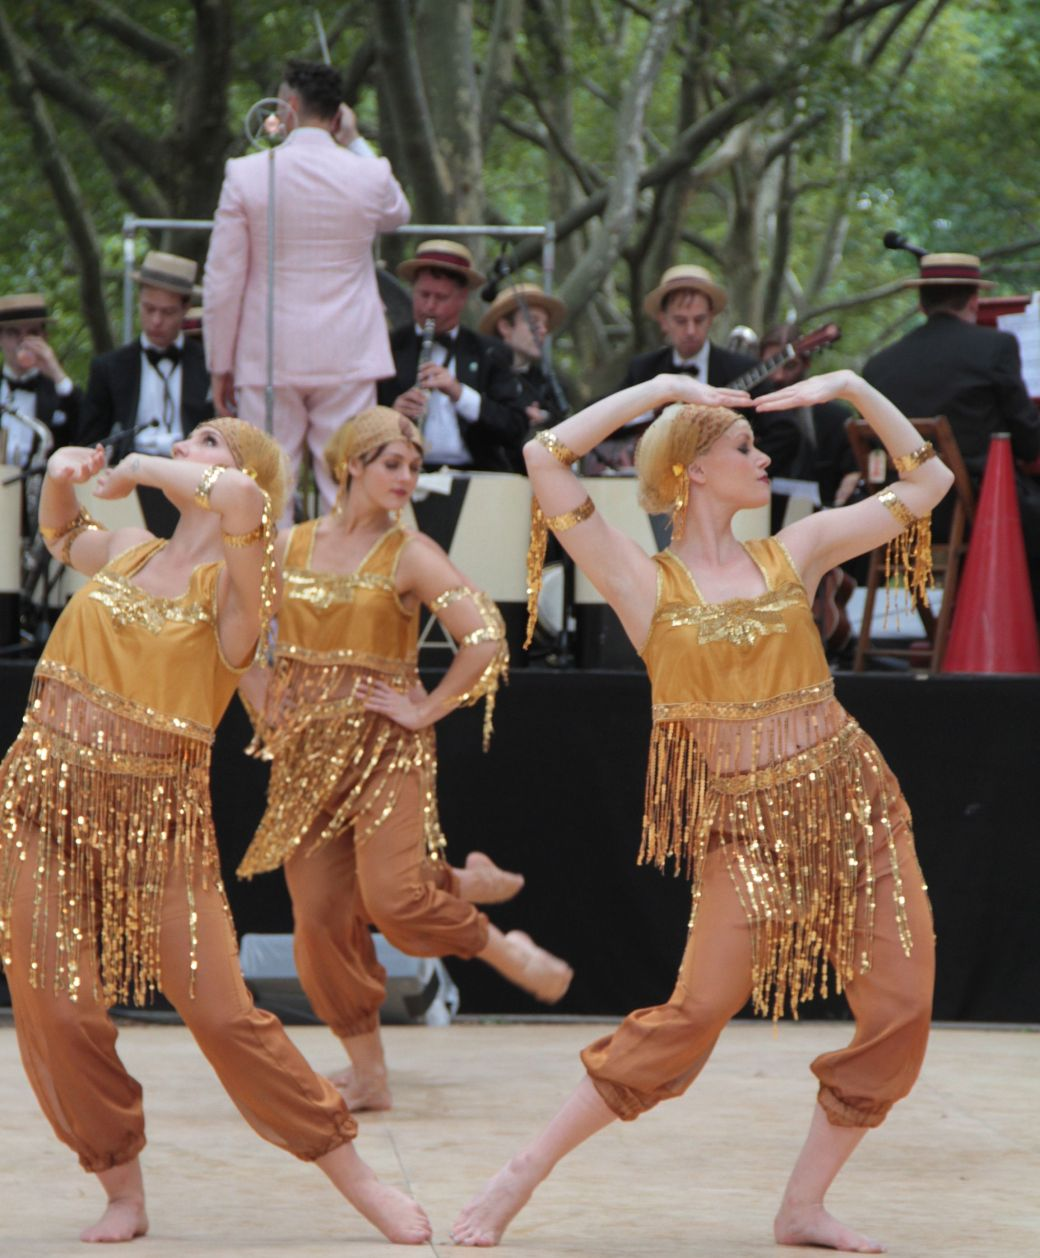 new york city governors island 20 jazz age party 2013 dreamland follies gold costume dance 2